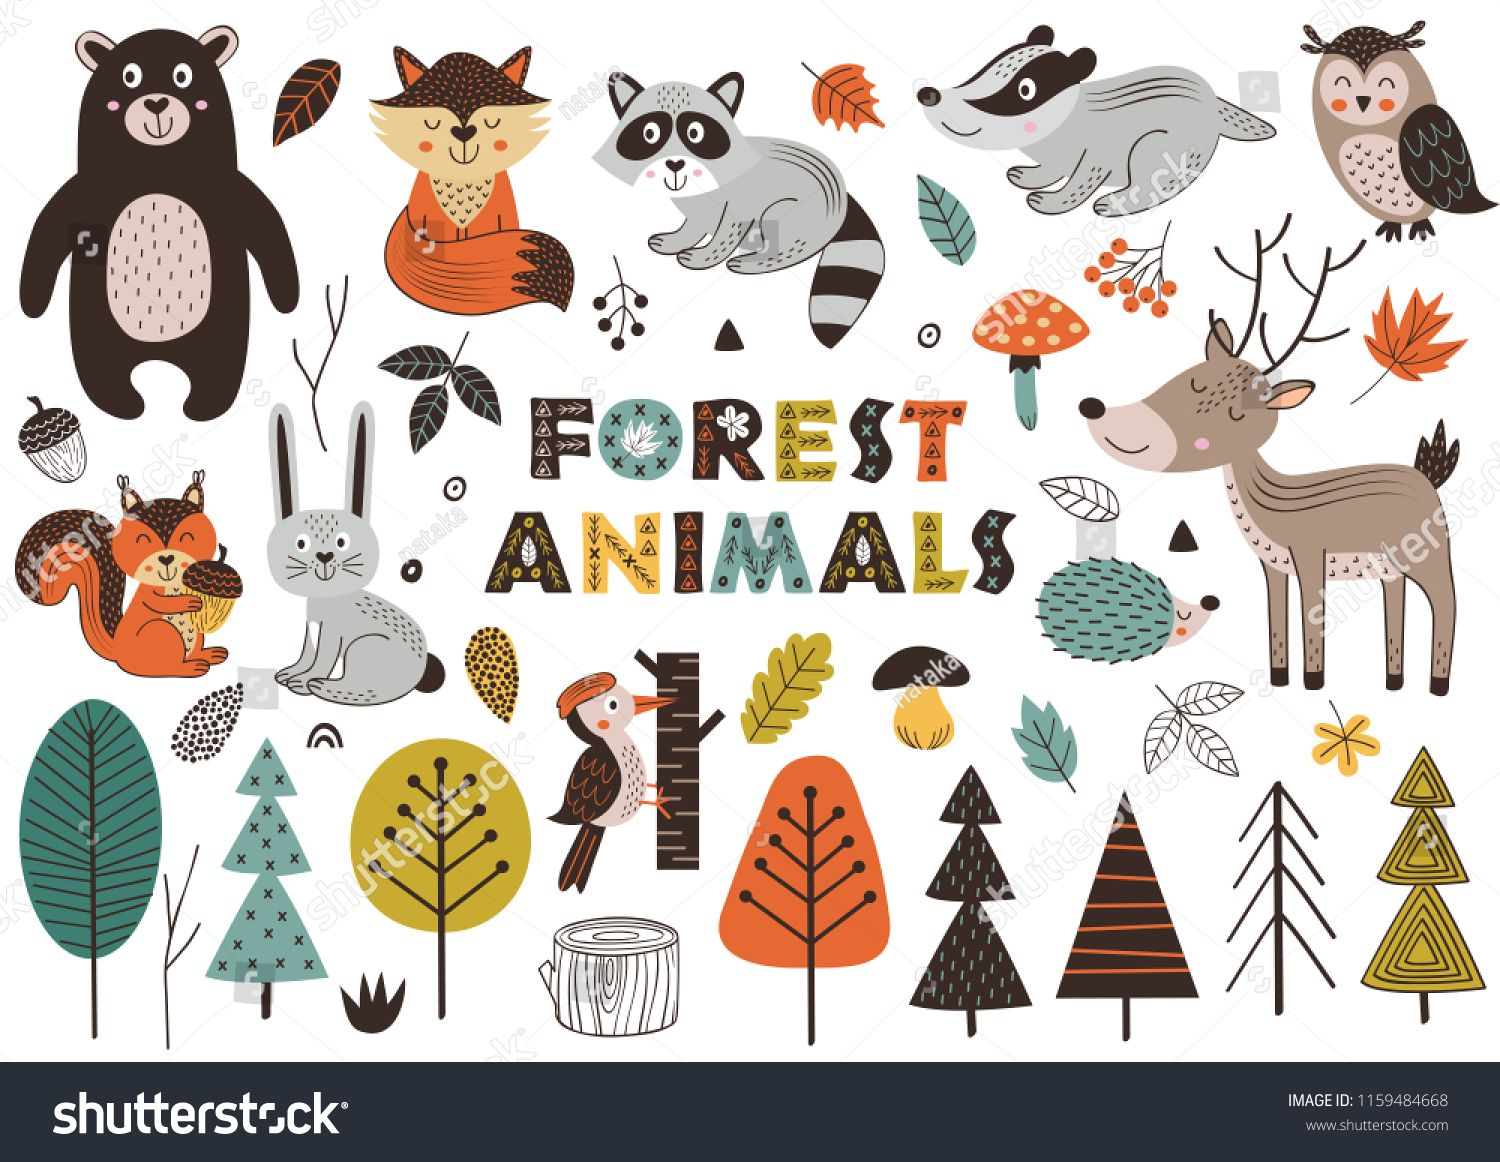 Forest Animals And Plants In Scandinavian Style Vector Illustration Eps Sponsored Sponsore In 2020 Forest Animals Illustration Forest Animals Scandinavian Style